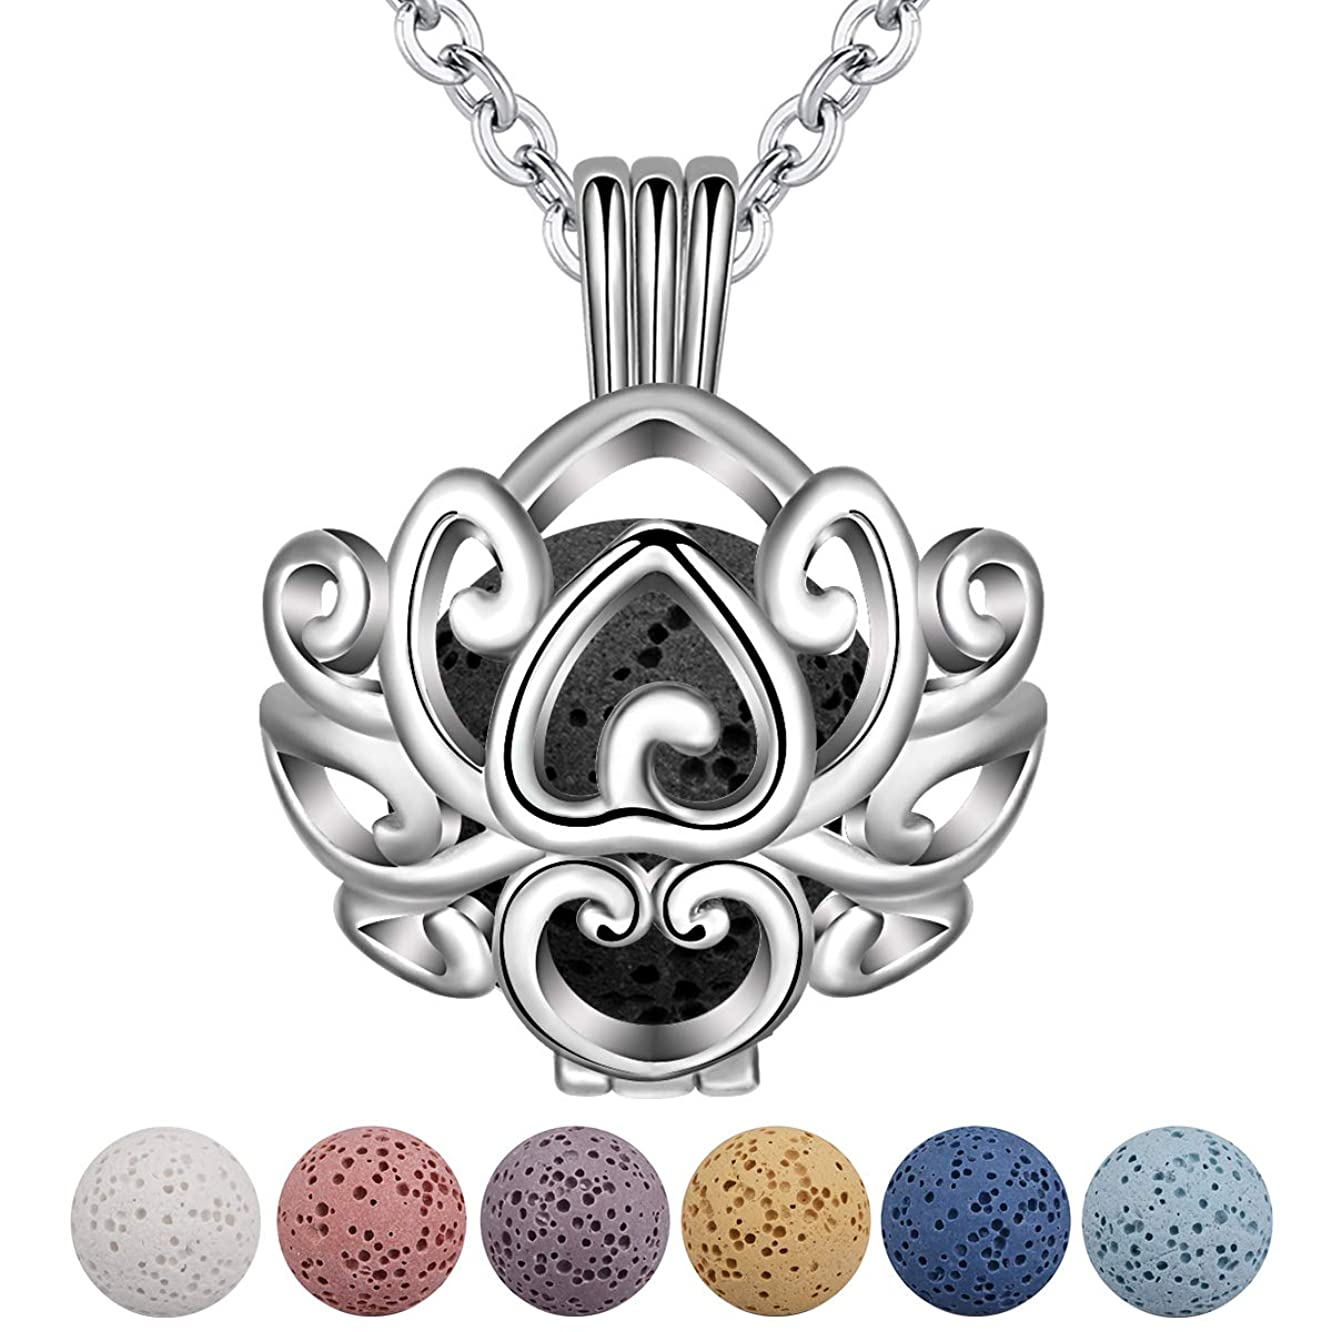 INFUSEU Aromatherapy Essential Oils Diffuser Necklace Flower Locket Pendant scented Jewelry set for Women Girl with 5 PCS Lava Rock Stones